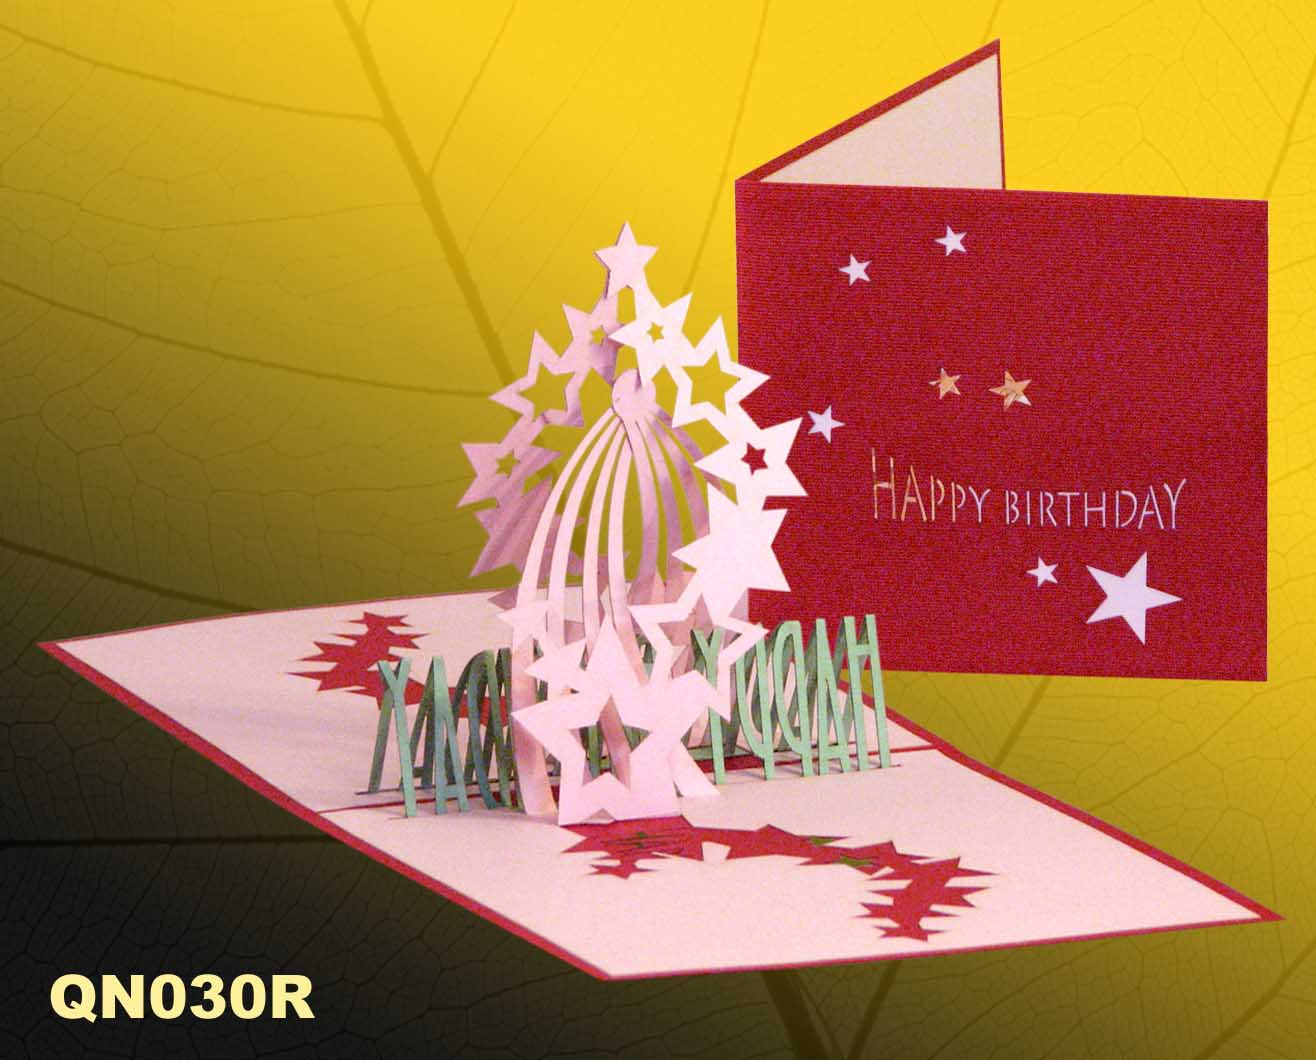 Birthday star 2 pop up handmade greeting cards qn030 m4hsunfo